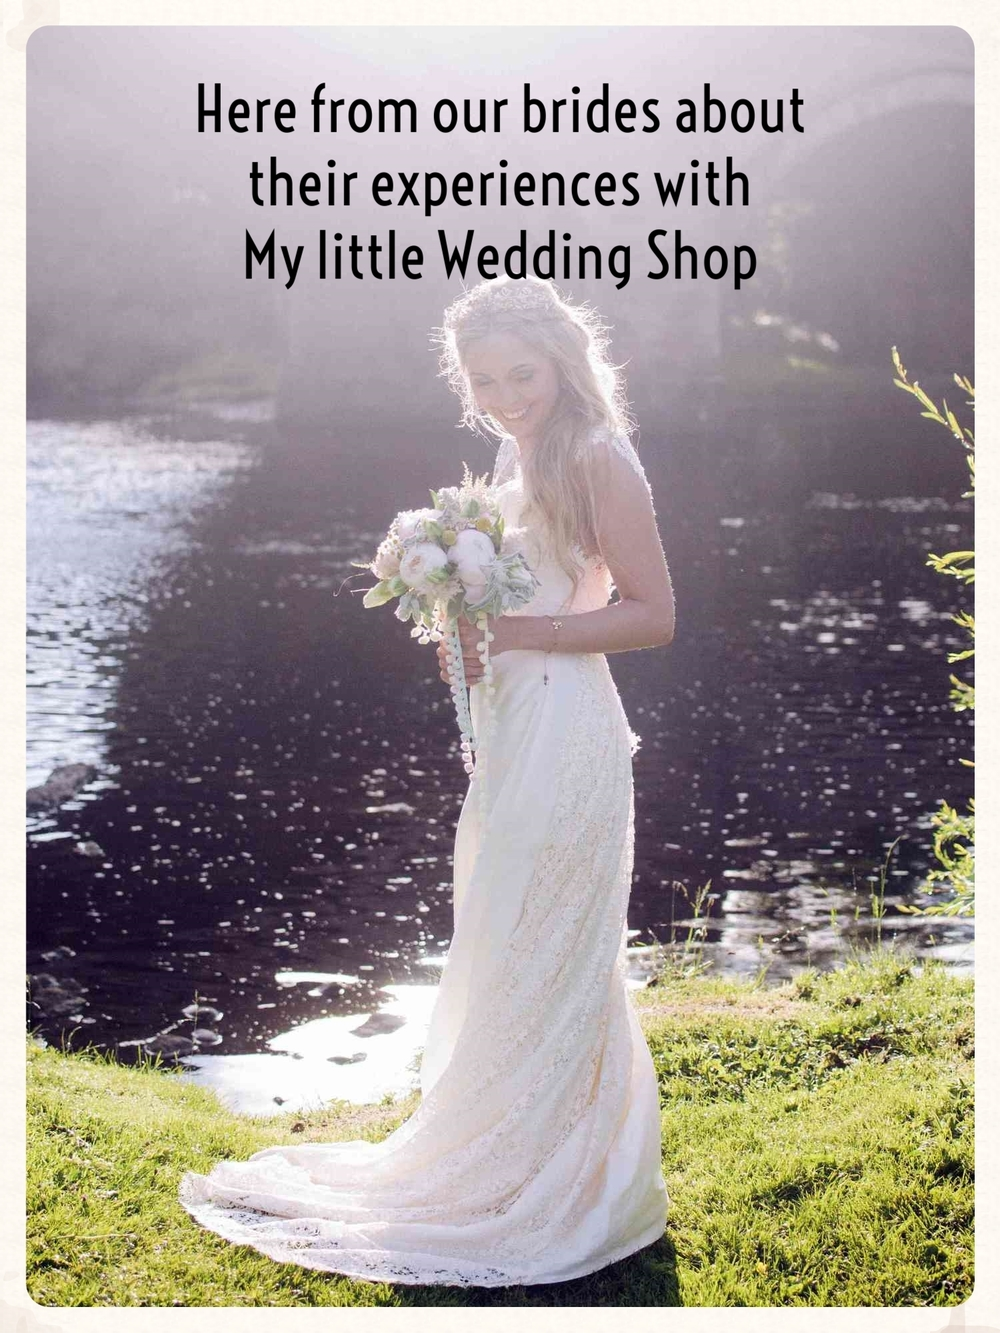 Here from our brides about their experiences with My little Wedding Shop